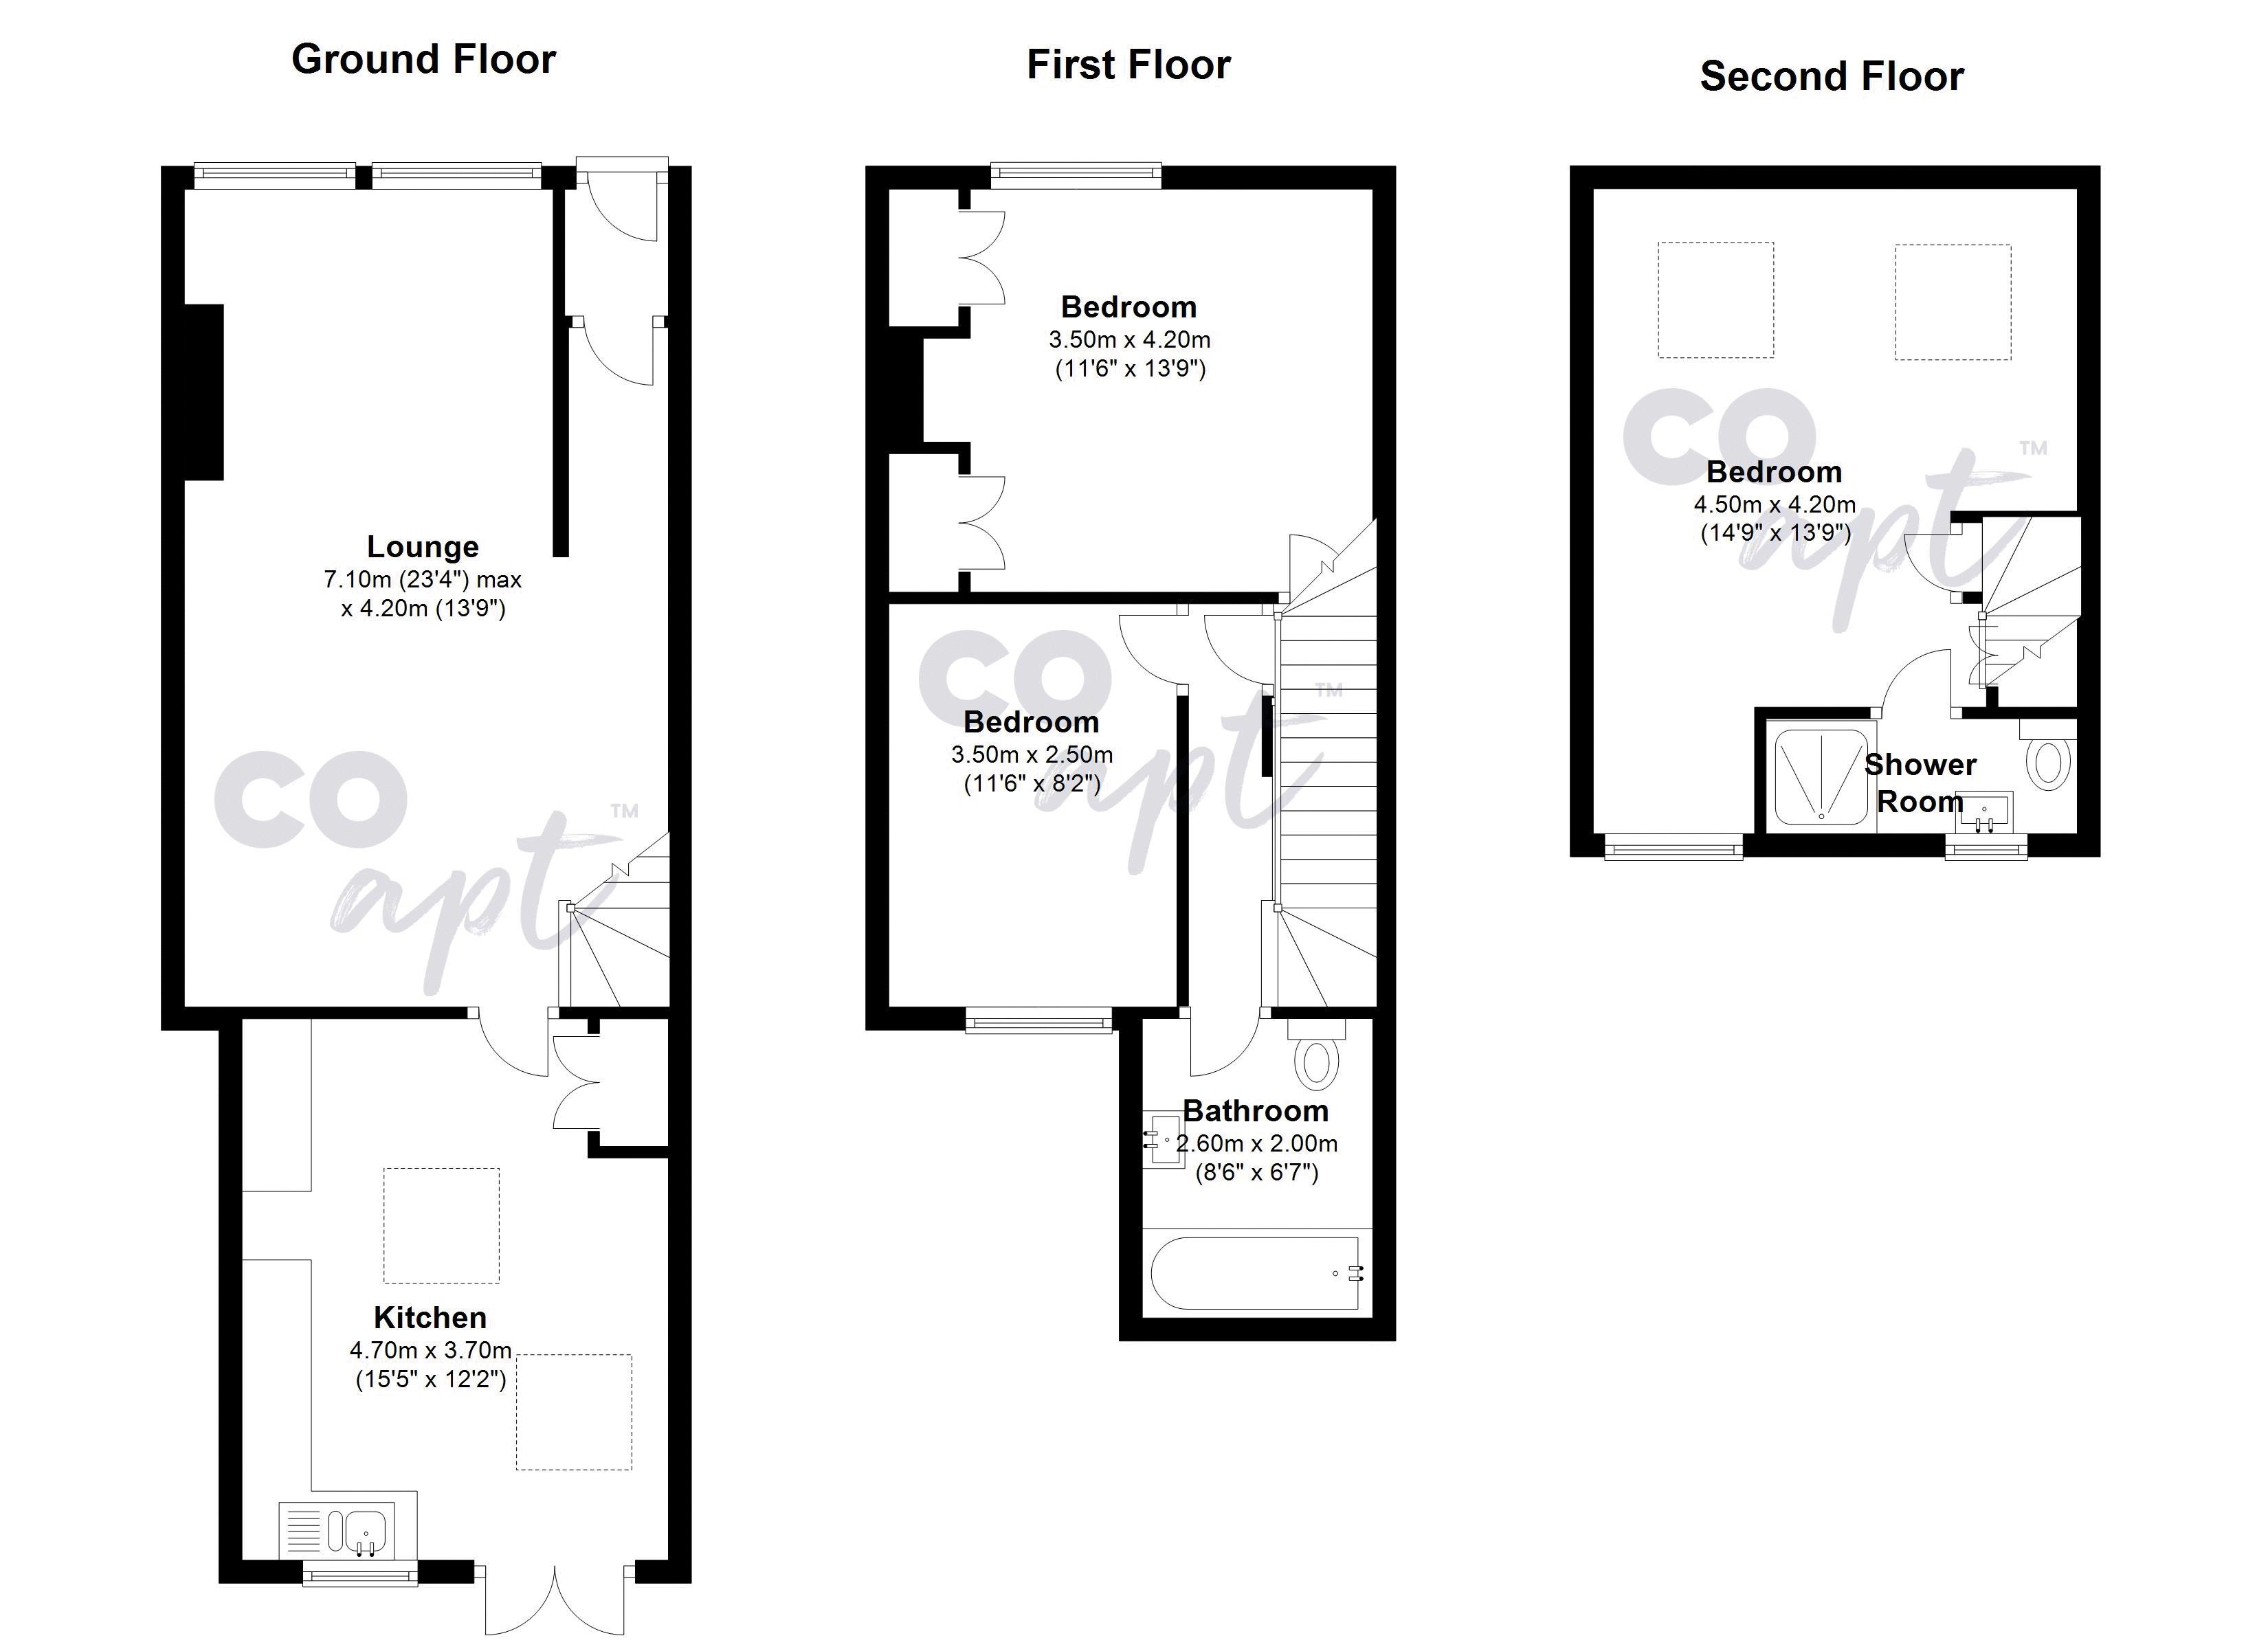 Floor plans for Sandgate Road, Brighton property for sale in Fiveways, Brighton by Coapt